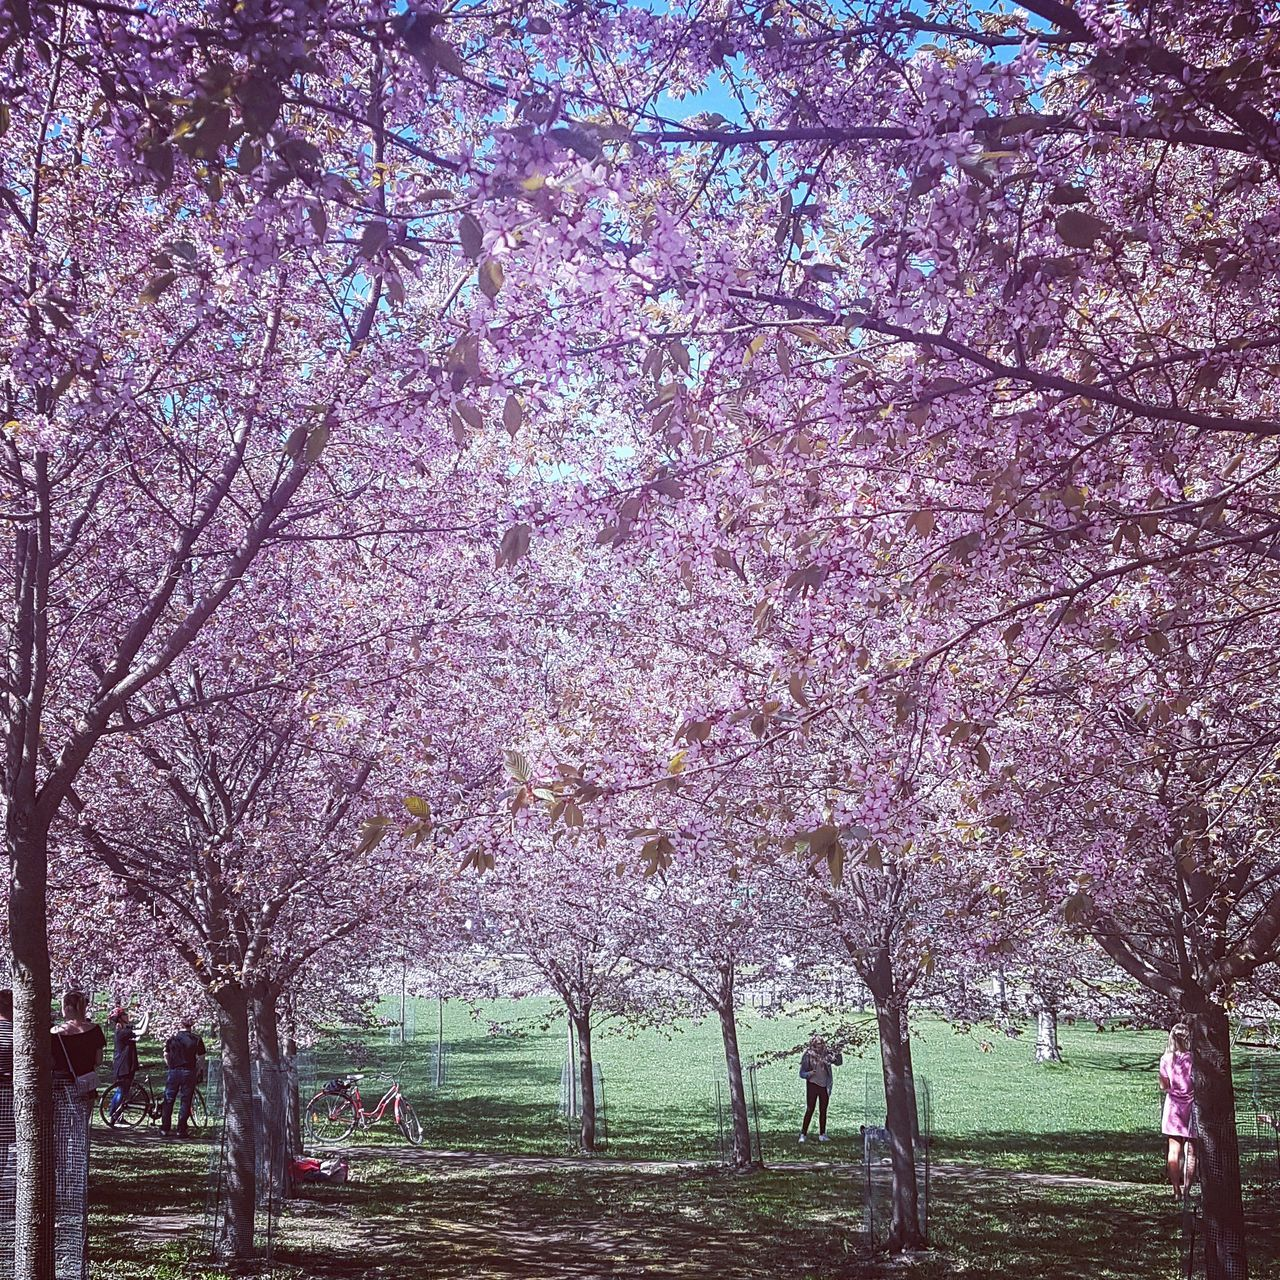 tree, blossom, cherry blossom, beauty in nature, flower, cherry tree, branch, nature, springtime, almond tree, growth, freshness, pink color, tranquility, fragility, park - man made space, scenics, pink, no people, tranquil scene, tree trunk, outdoors, spring, day, landscape, blooming, sky